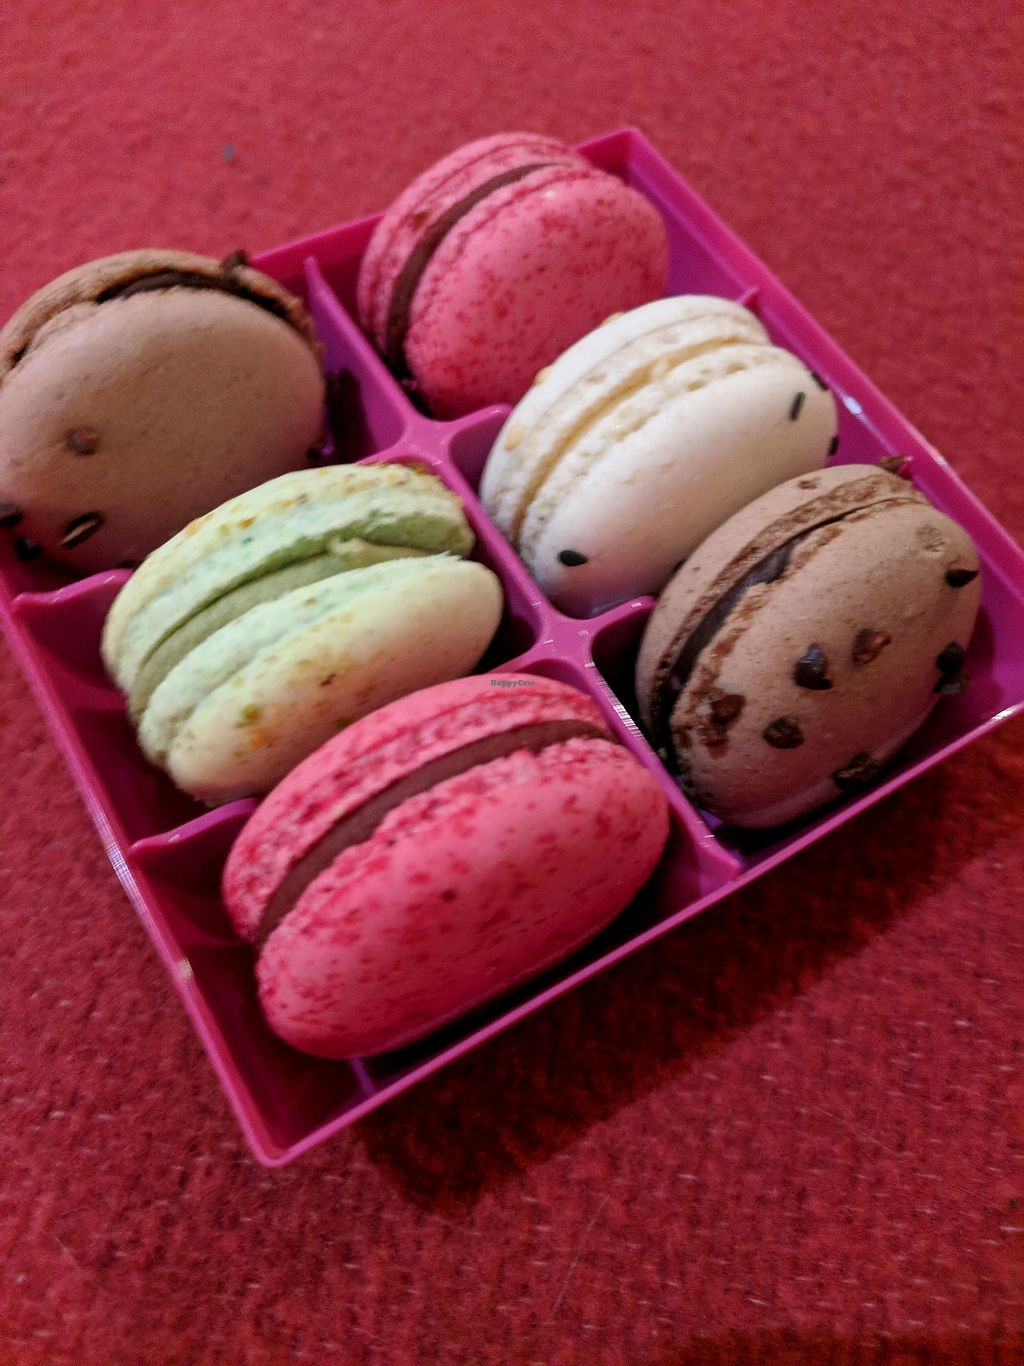 """Photo of Gentle Gourmet  by <a href=""""/members/profile/ThaisaFernandes"""">ThaisaFernandes</a> <br/>Vegan Macaron <br/> December 7, 2017  - <a href='/contact/abuse/image/31578/333116'>Report</a>"""